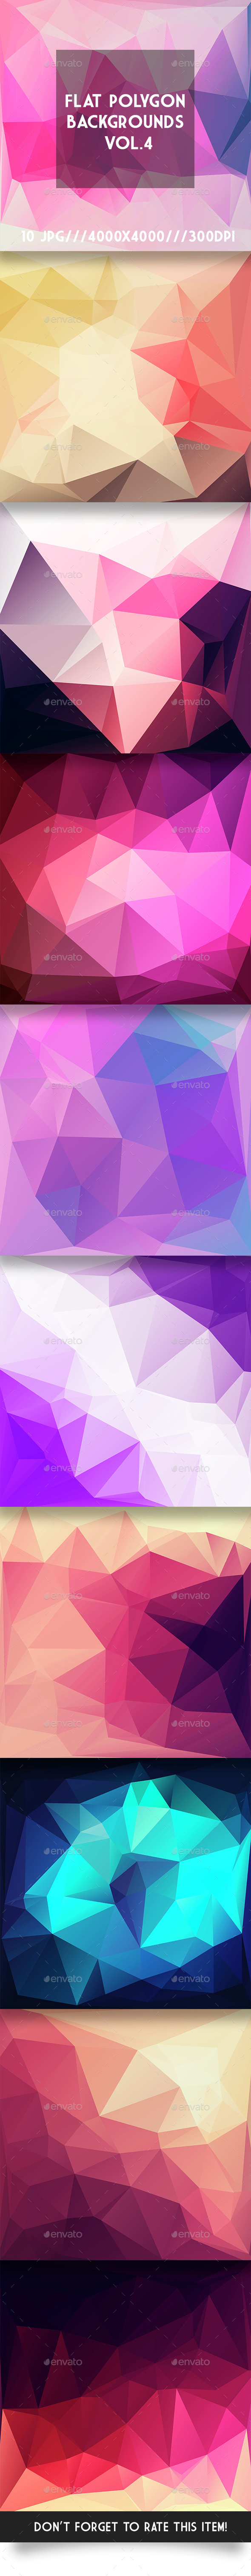 Flat Polygon Backgrounds Vol.4 - Abstract Backgrounds